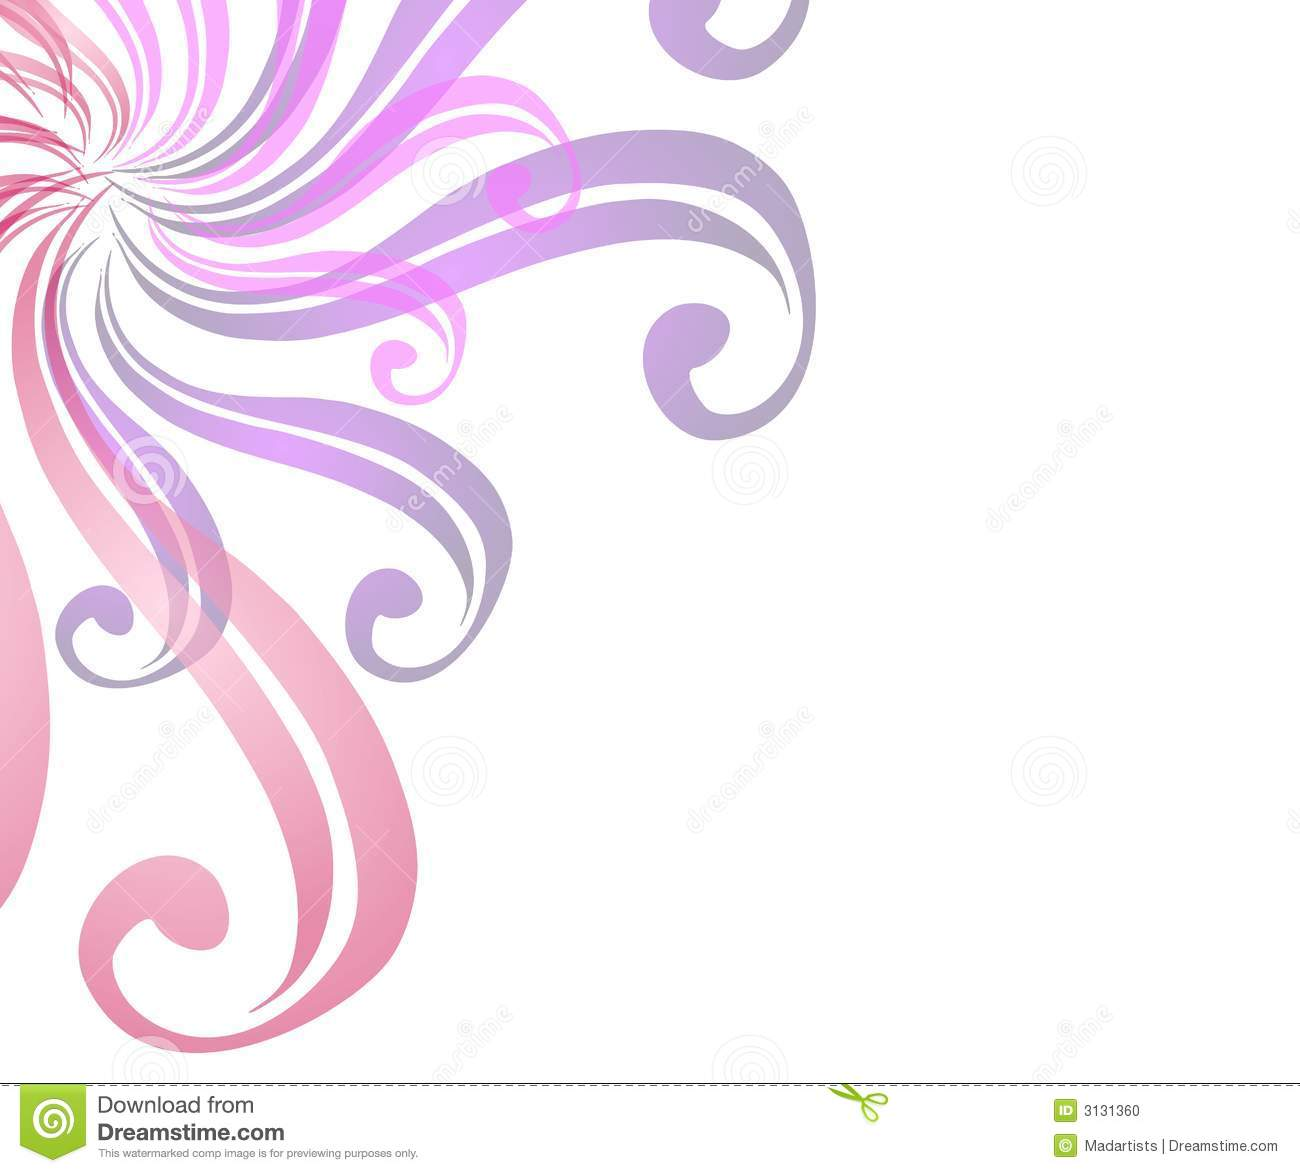 Swirls Web Page Background stock illustration. Illustration of ... 022f17f243c0